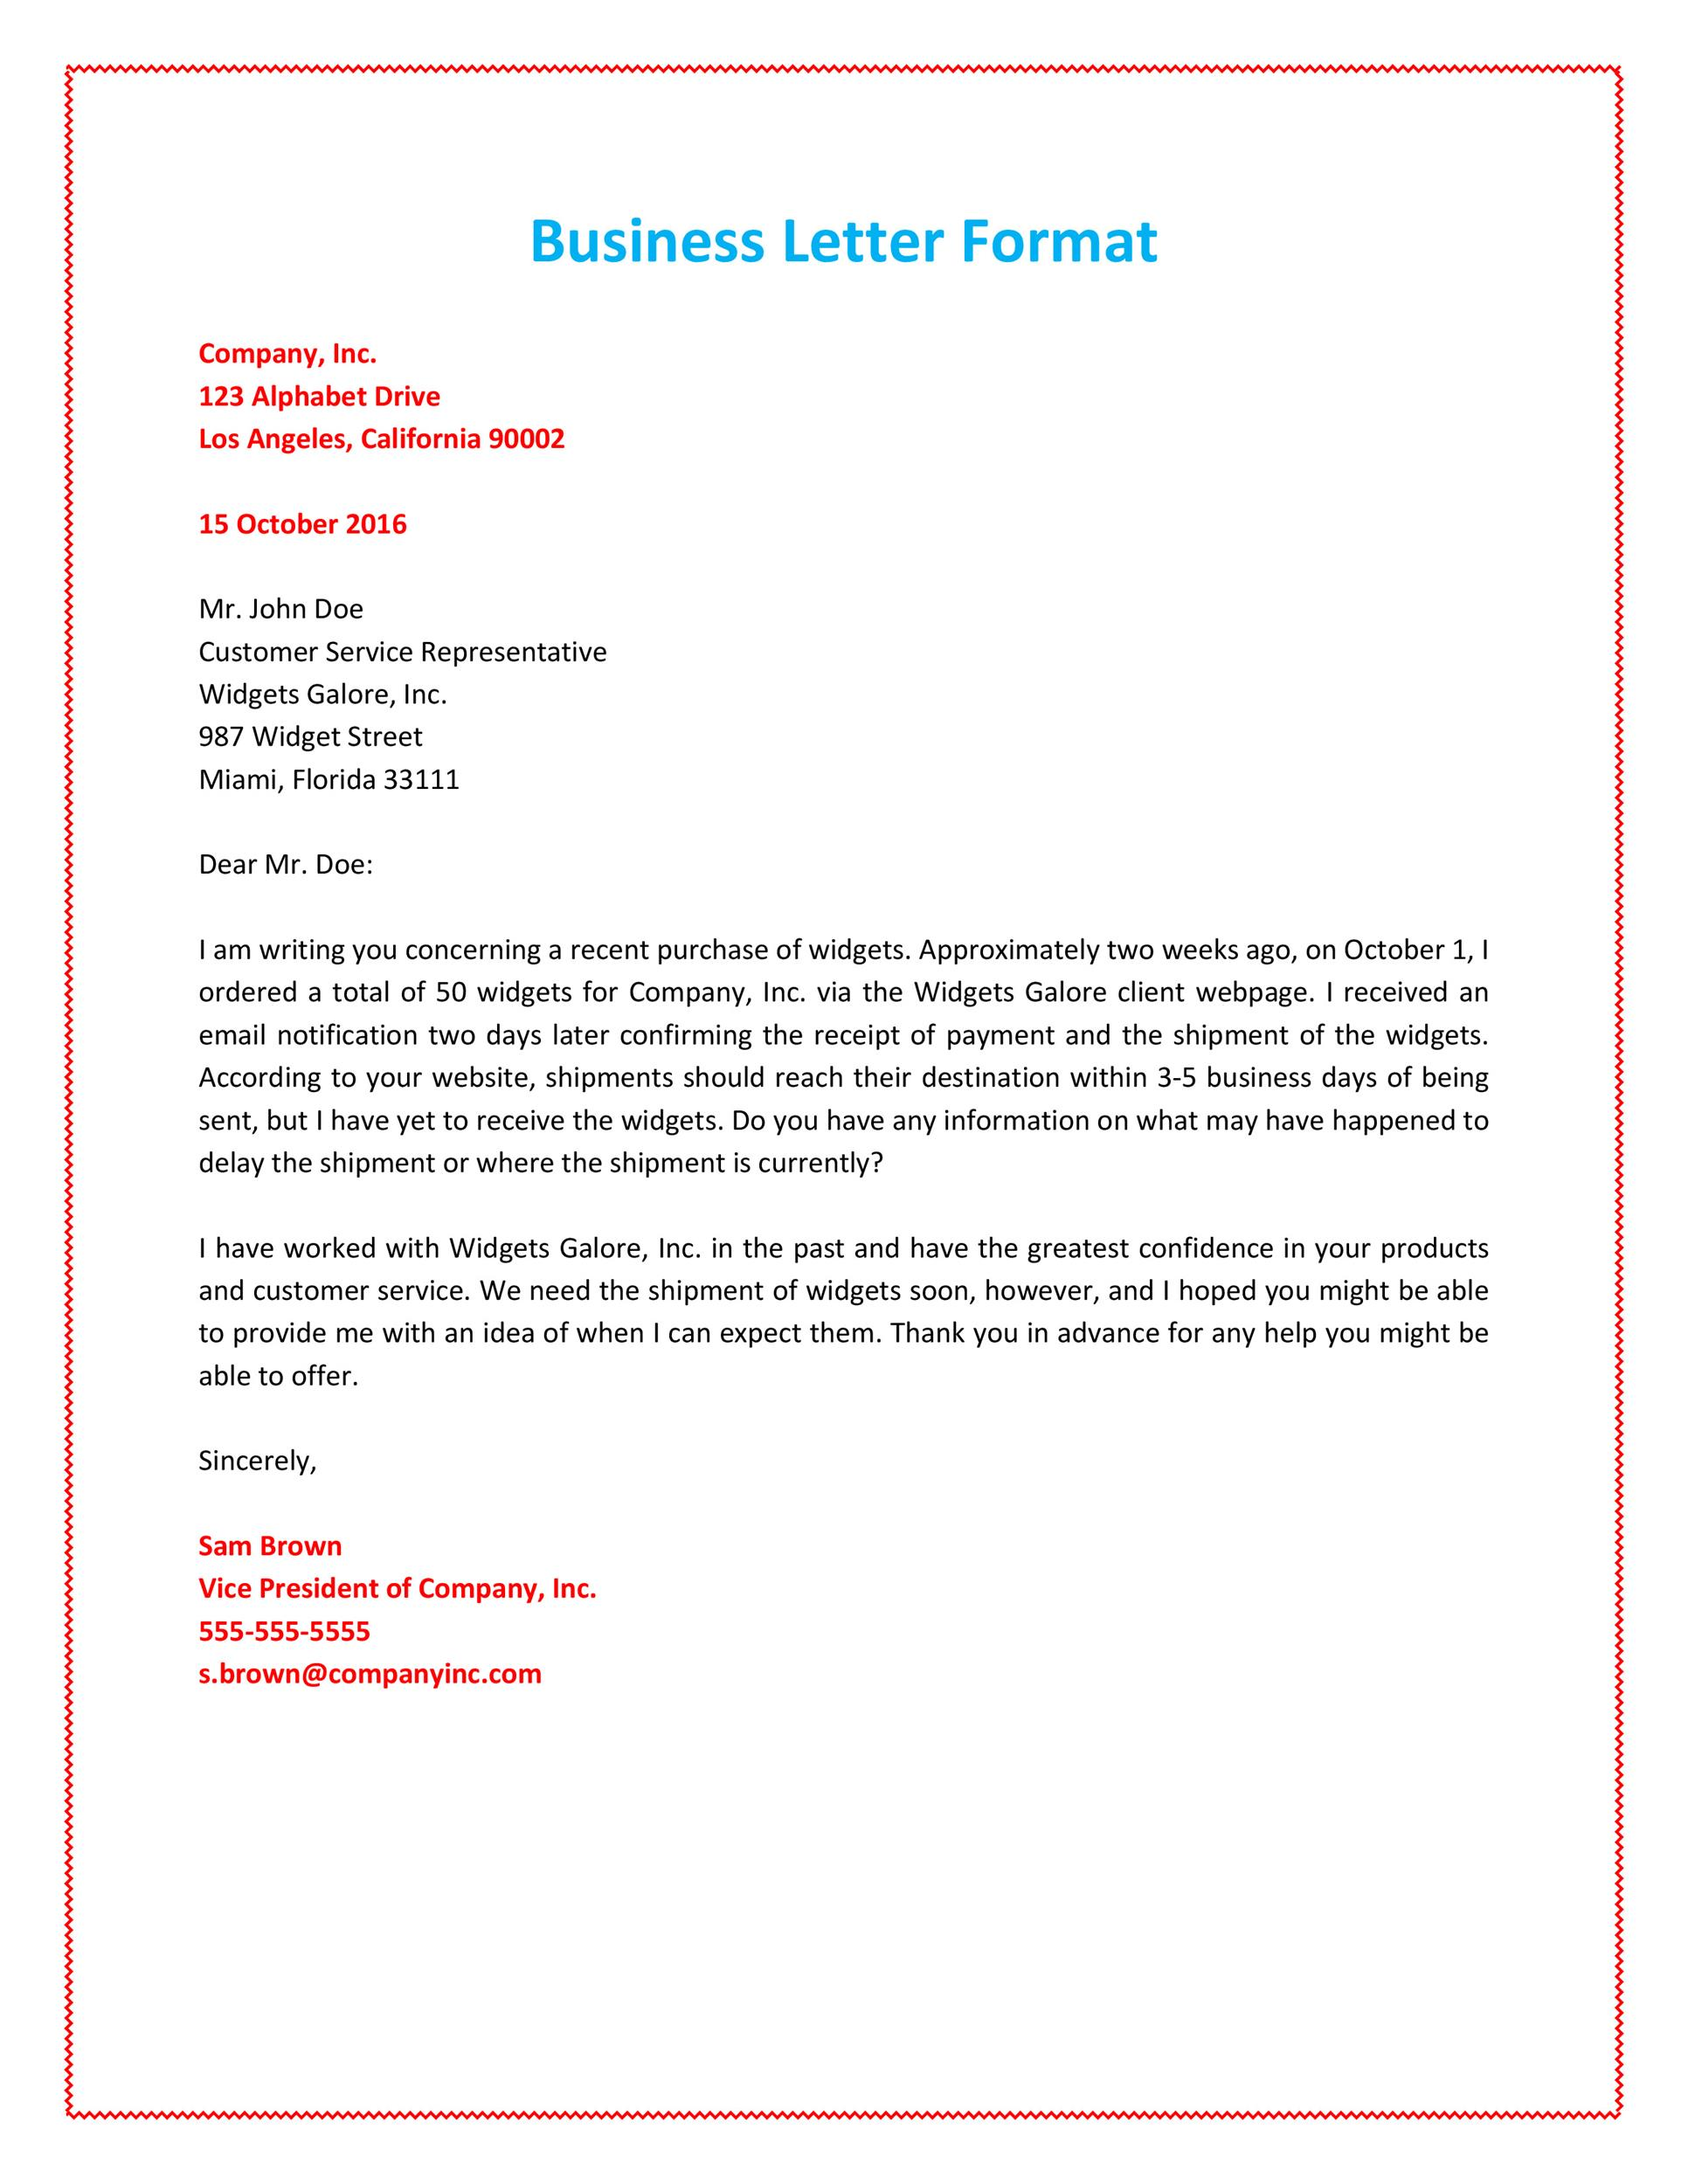 35 formal business letter format templates examples template lab printable formal business letter 01 platinumwayz